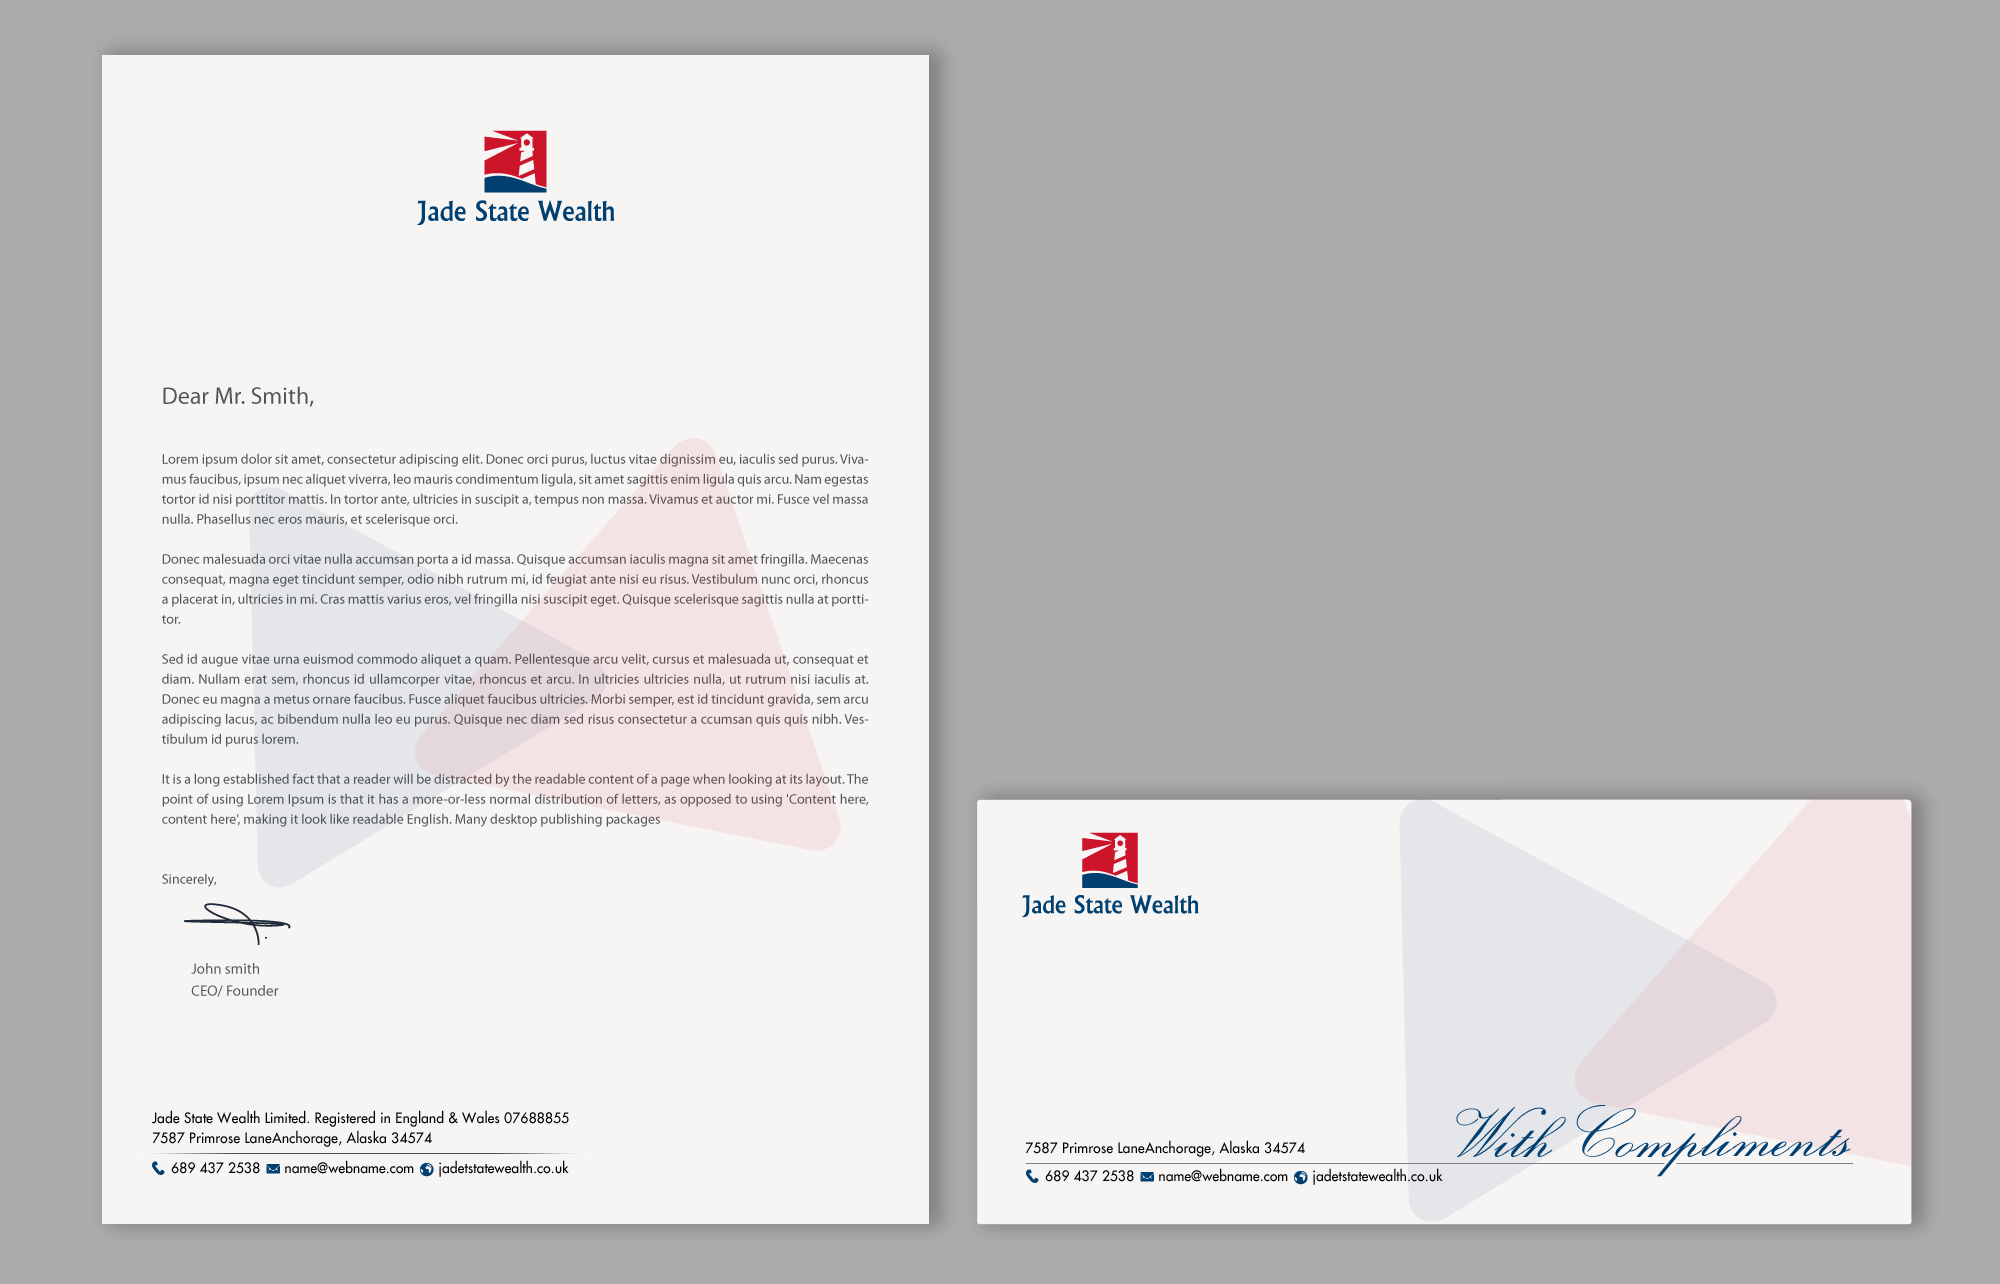 Modern Professional Stationery Design for Jade State Wealth